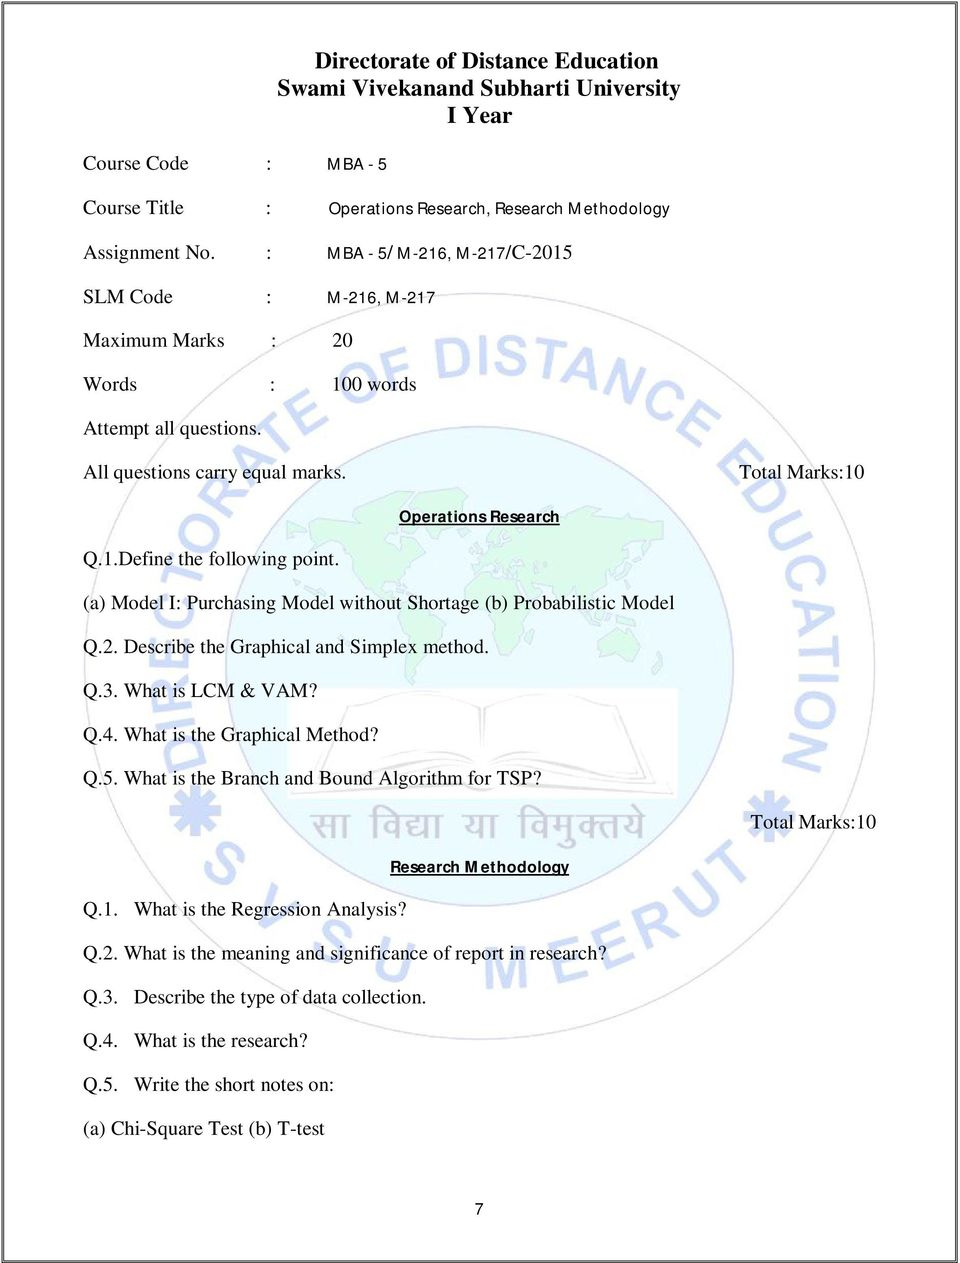 master of business administration mba mba assign i year  what is the graphical method q 5 what is the branch and bound